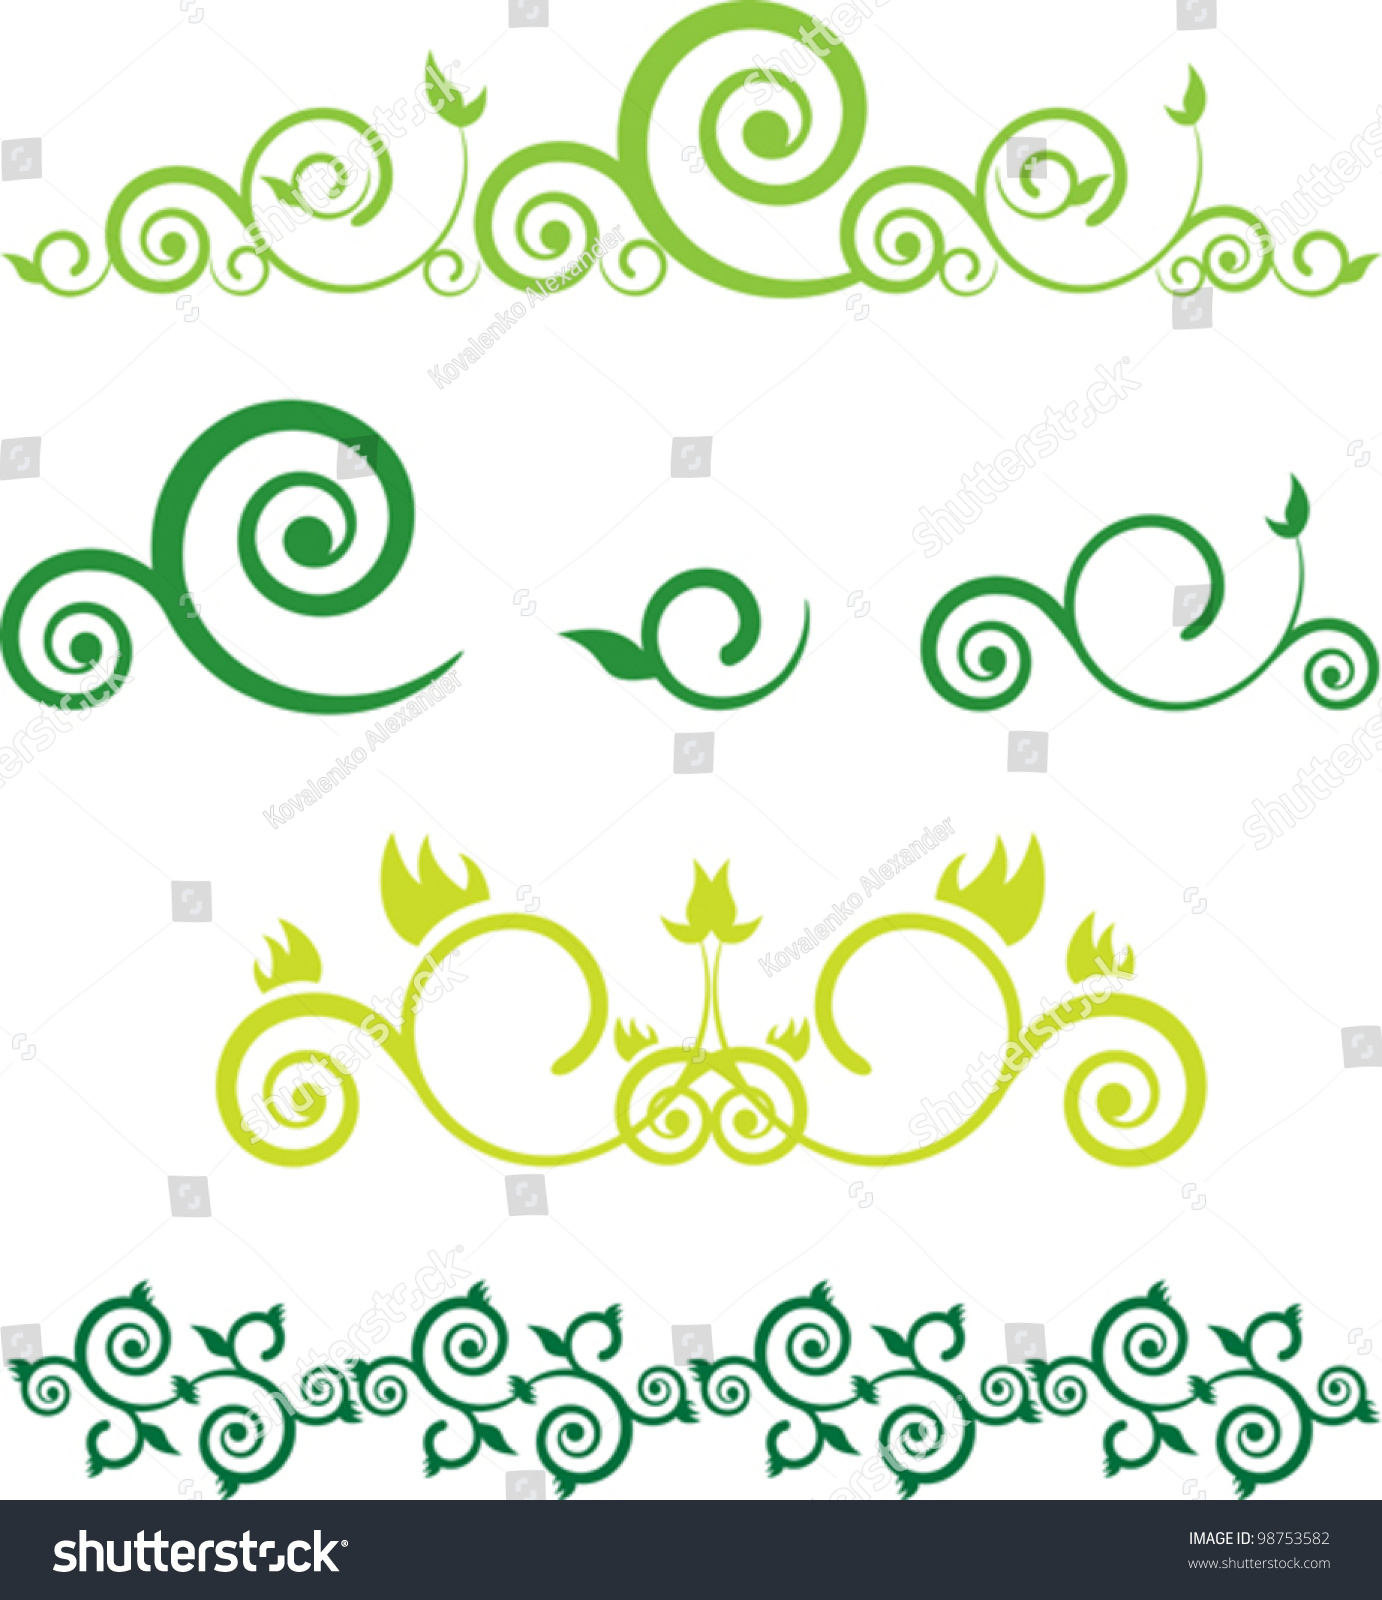 Green floral border swirls stock vector 98753582 shutterstock green floral border with swirls altavistaventures Images